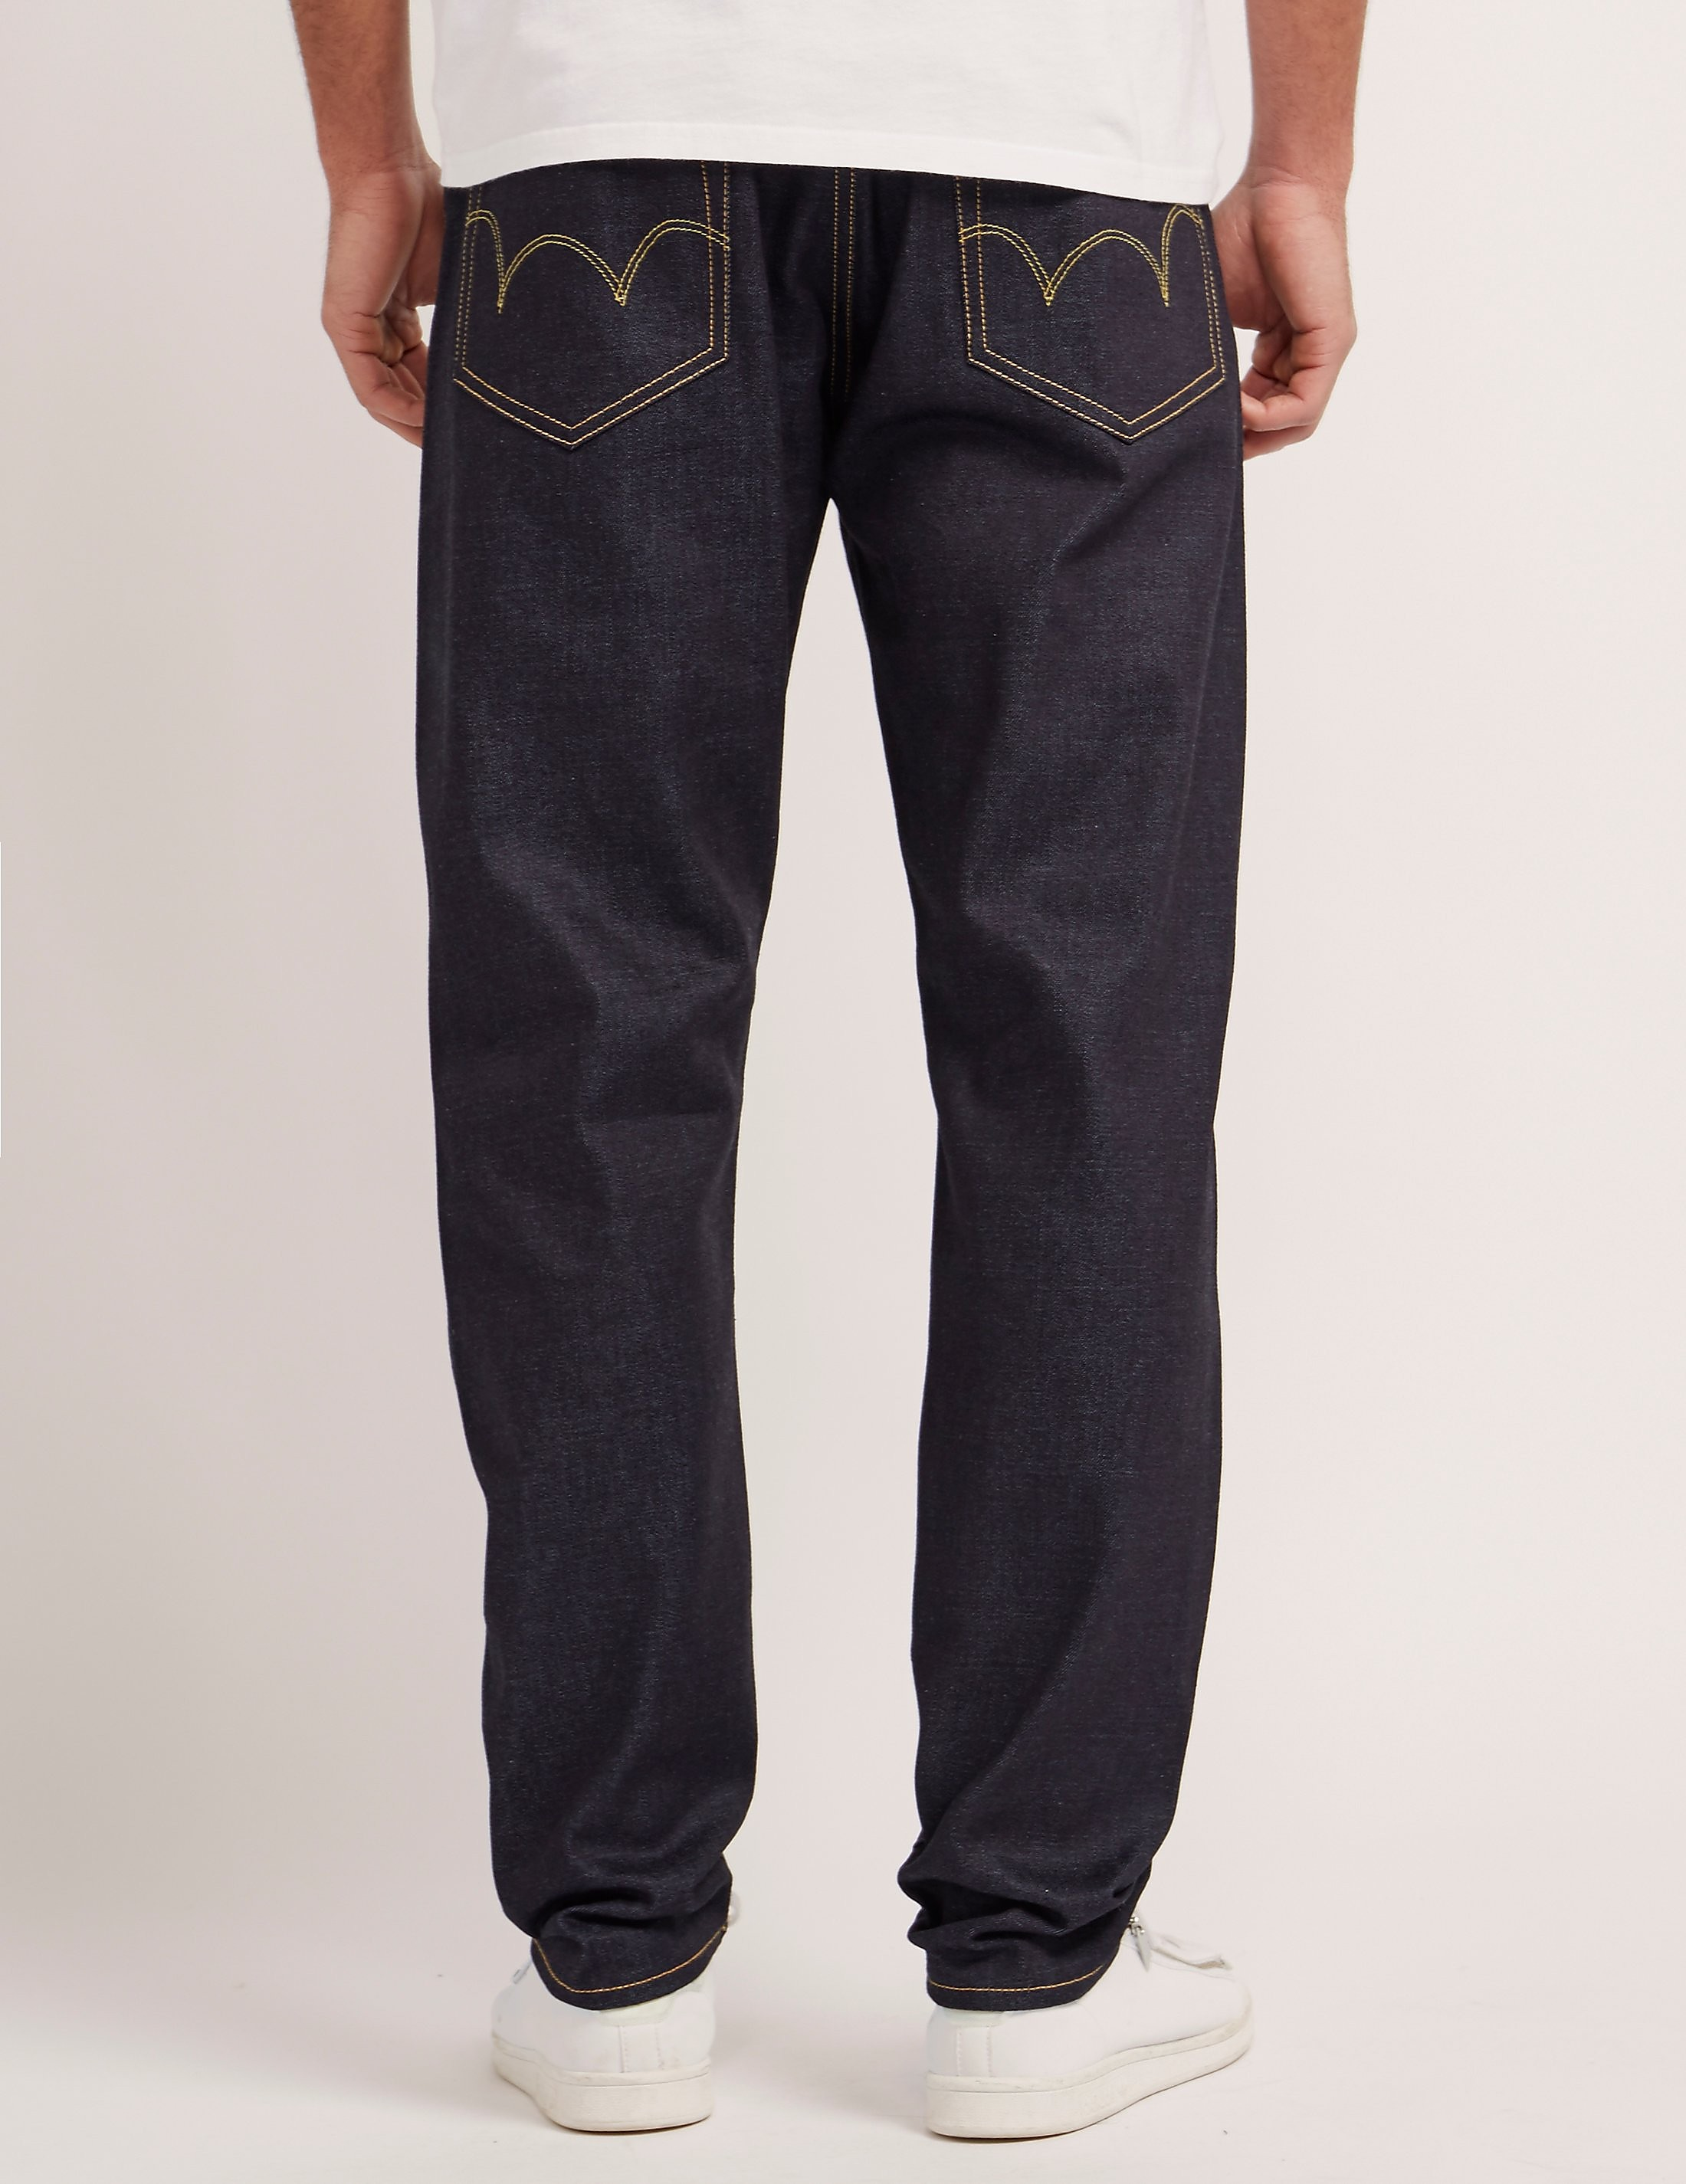 Edwin ED45 Unwashed Jeans